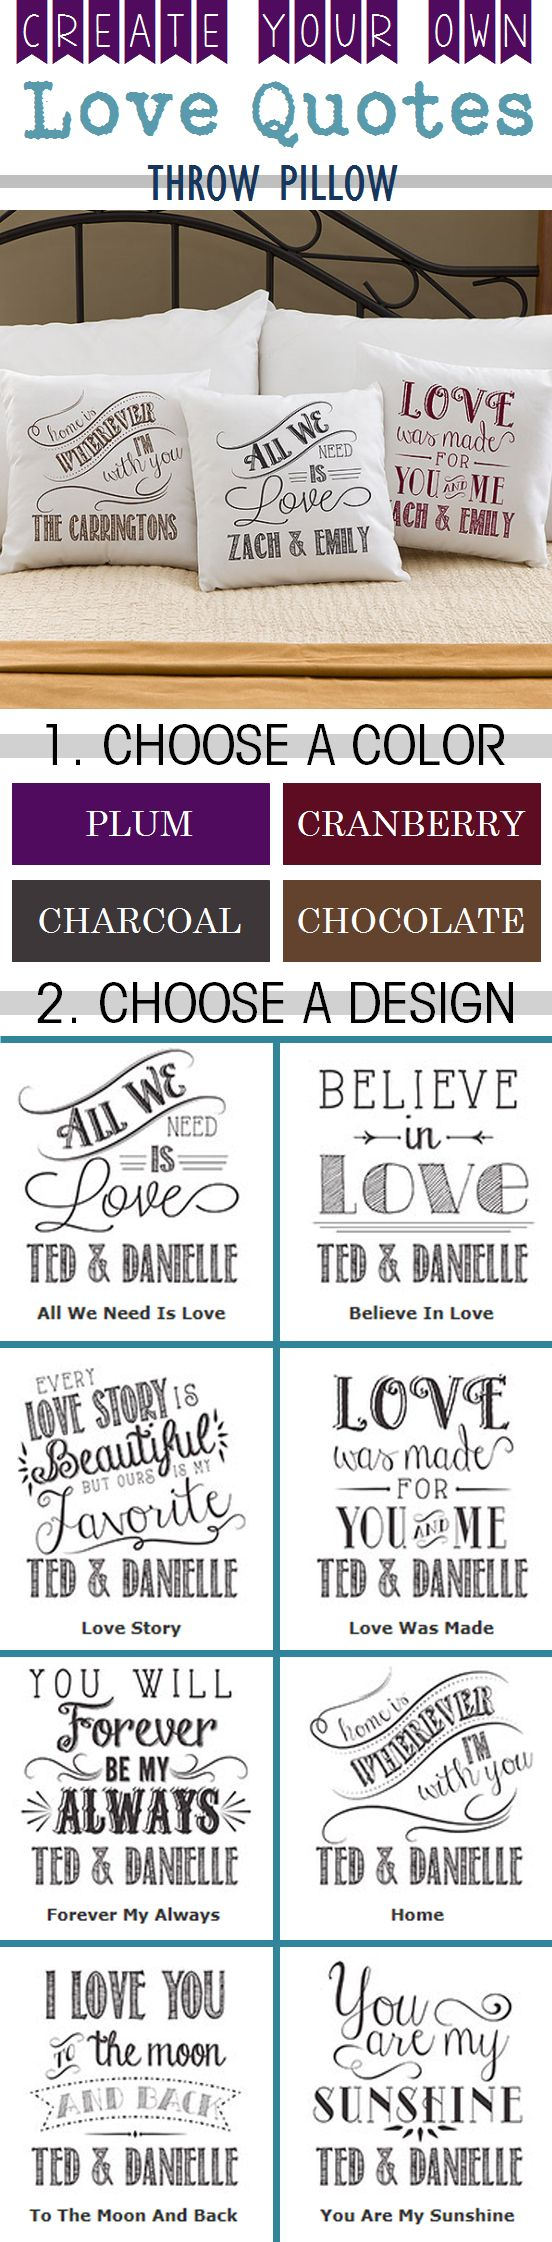 """LOVE LOVE LOVE this """"Love Quotes"""" throw pillow! You get to choose any design and any color and then you can personalize it with any 2 names! Such a super cute and affordable wedding gift or Valentine's Day gift idea! #Wedding #ValentinesDay"""